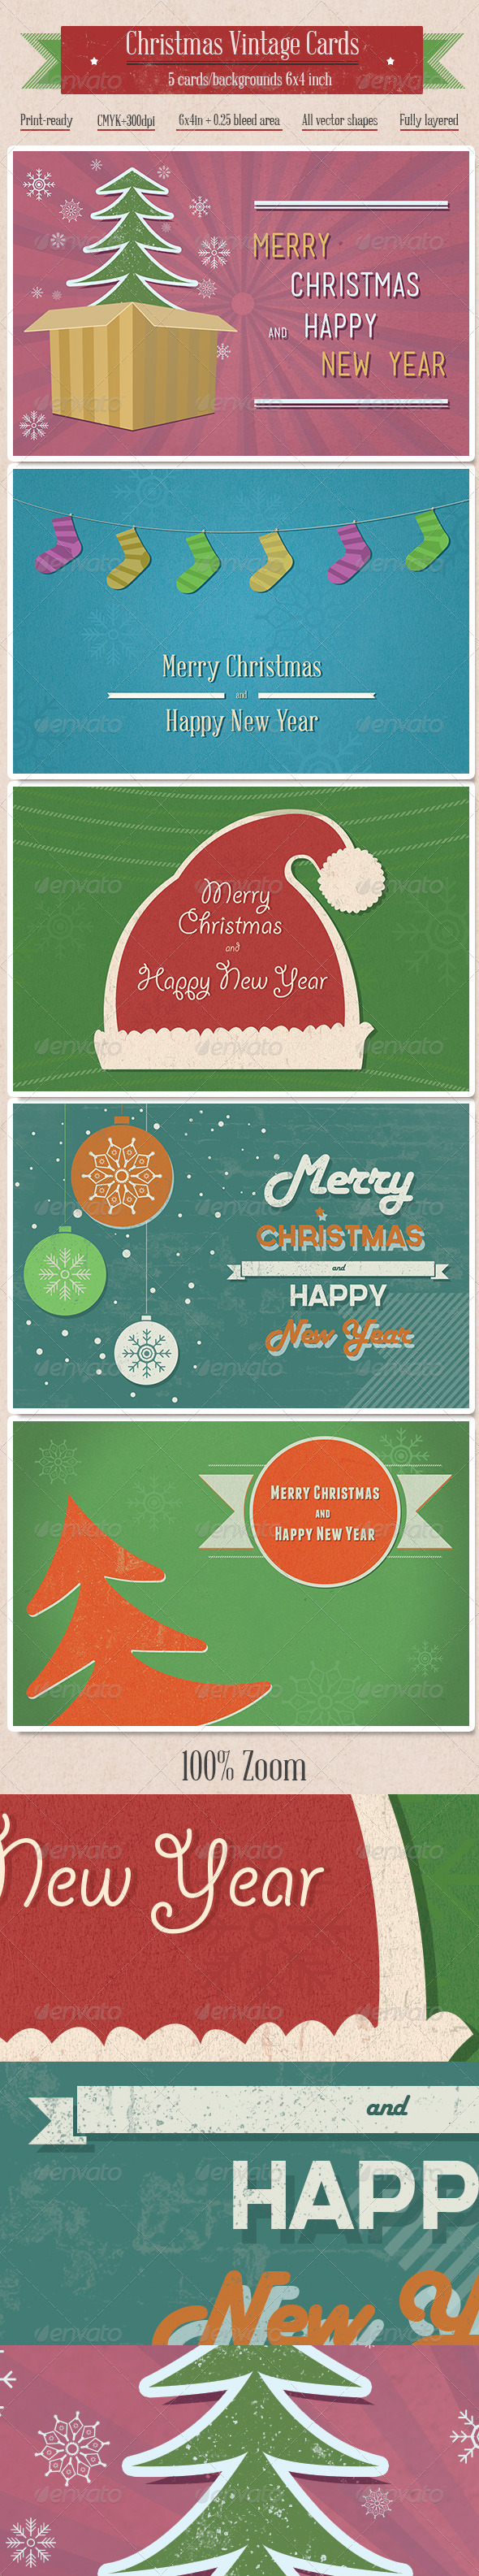 5 Vintage Christmas Cards/Backgrounds - Retro/Vintage Business Cards